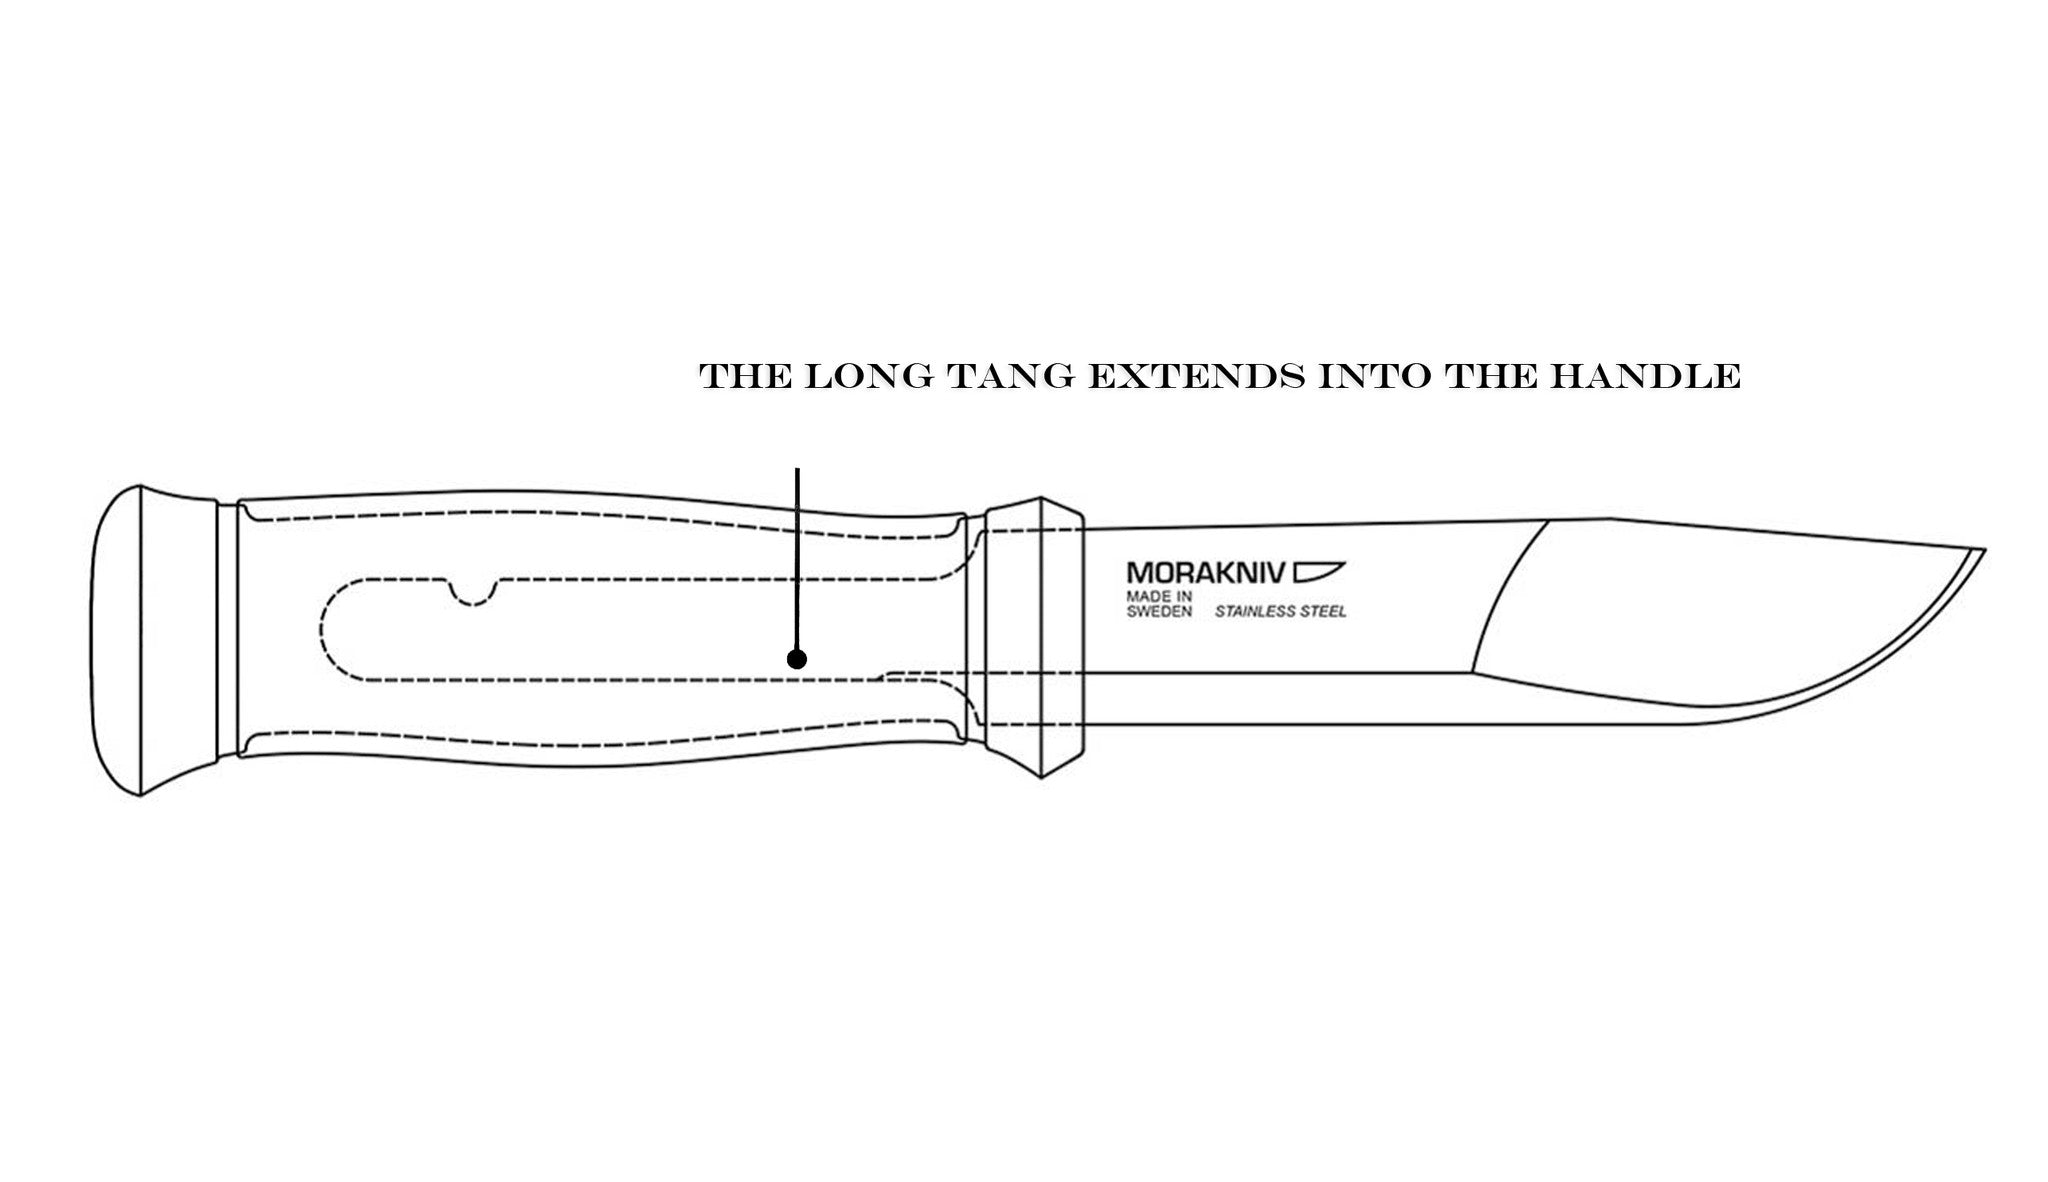 Long Tang Extends Into Handle